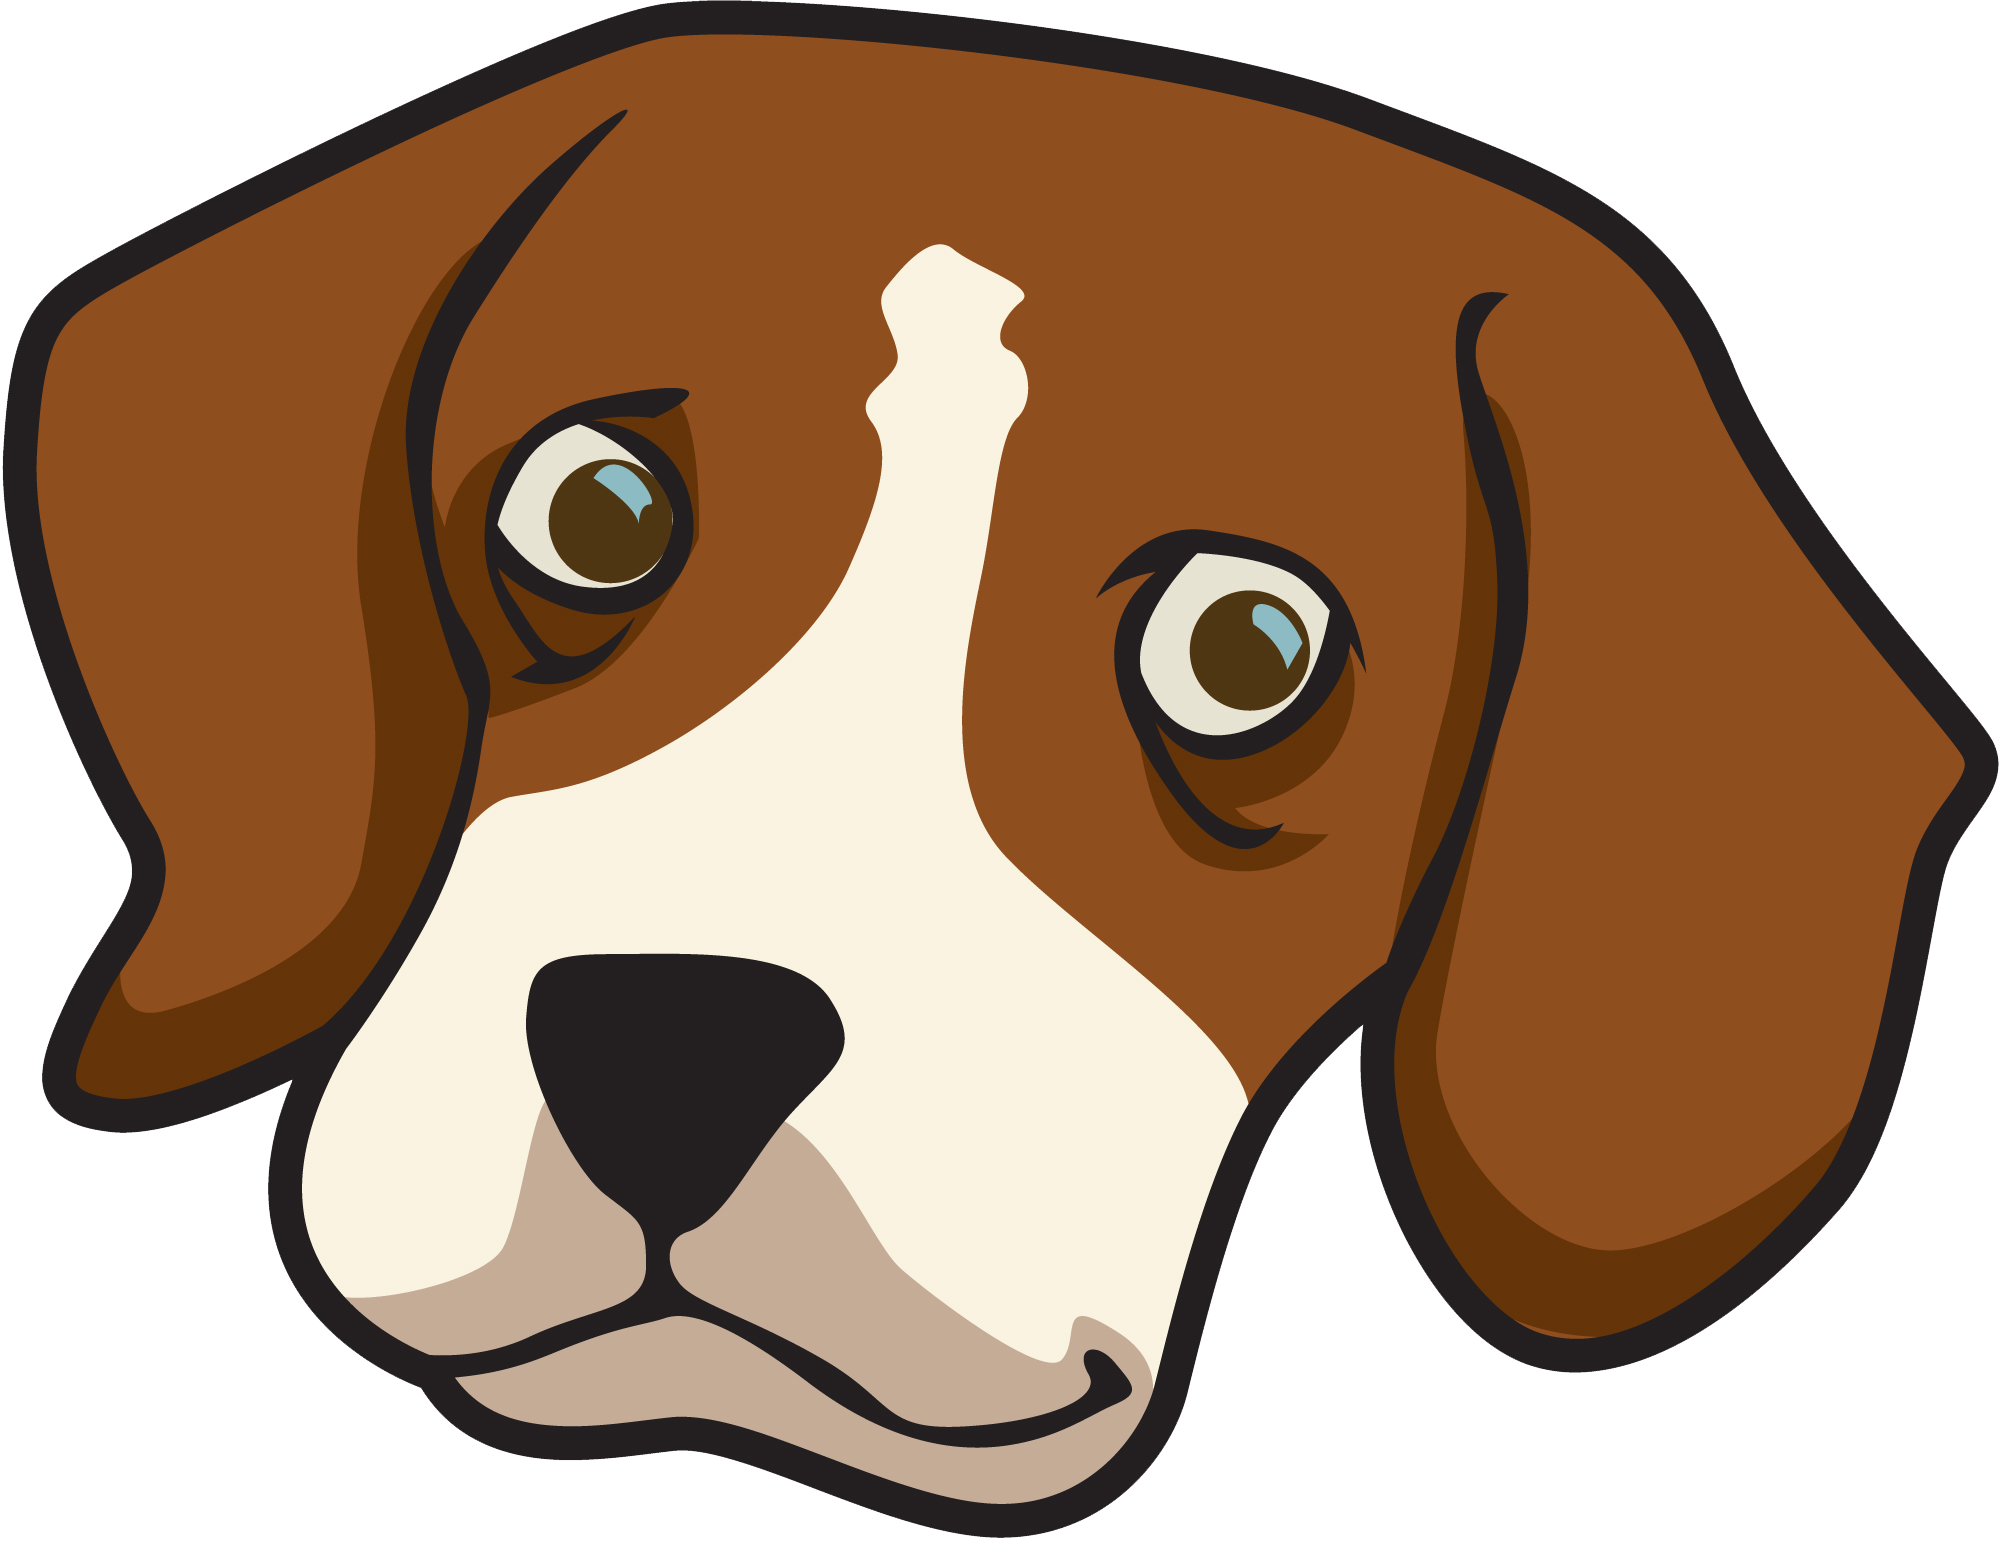 Boxer dog face clipart image free download 28+ Collection of Clipart Dog Face | High quality, free cliparts ... image free download